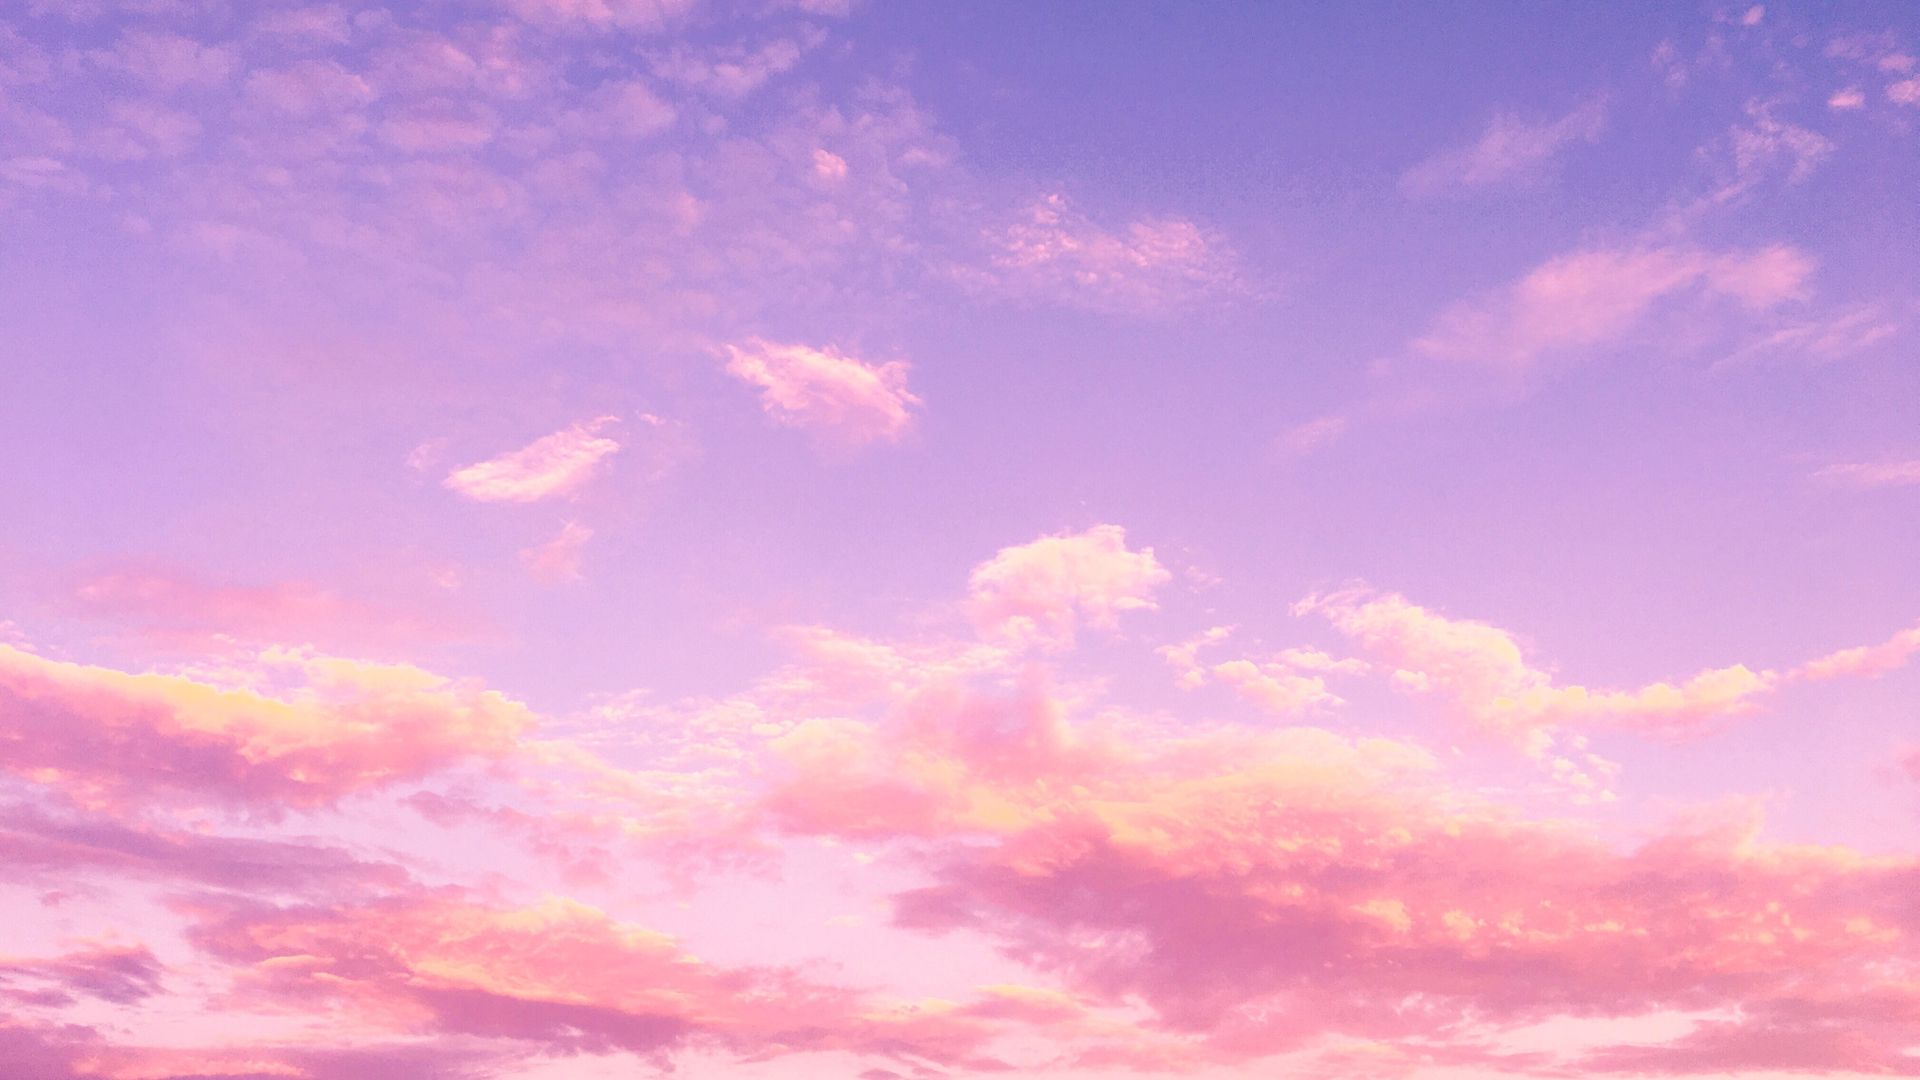 Pink Sky Wallpapers Top Free Pink Sky Backgrounds Wallpaperaccess